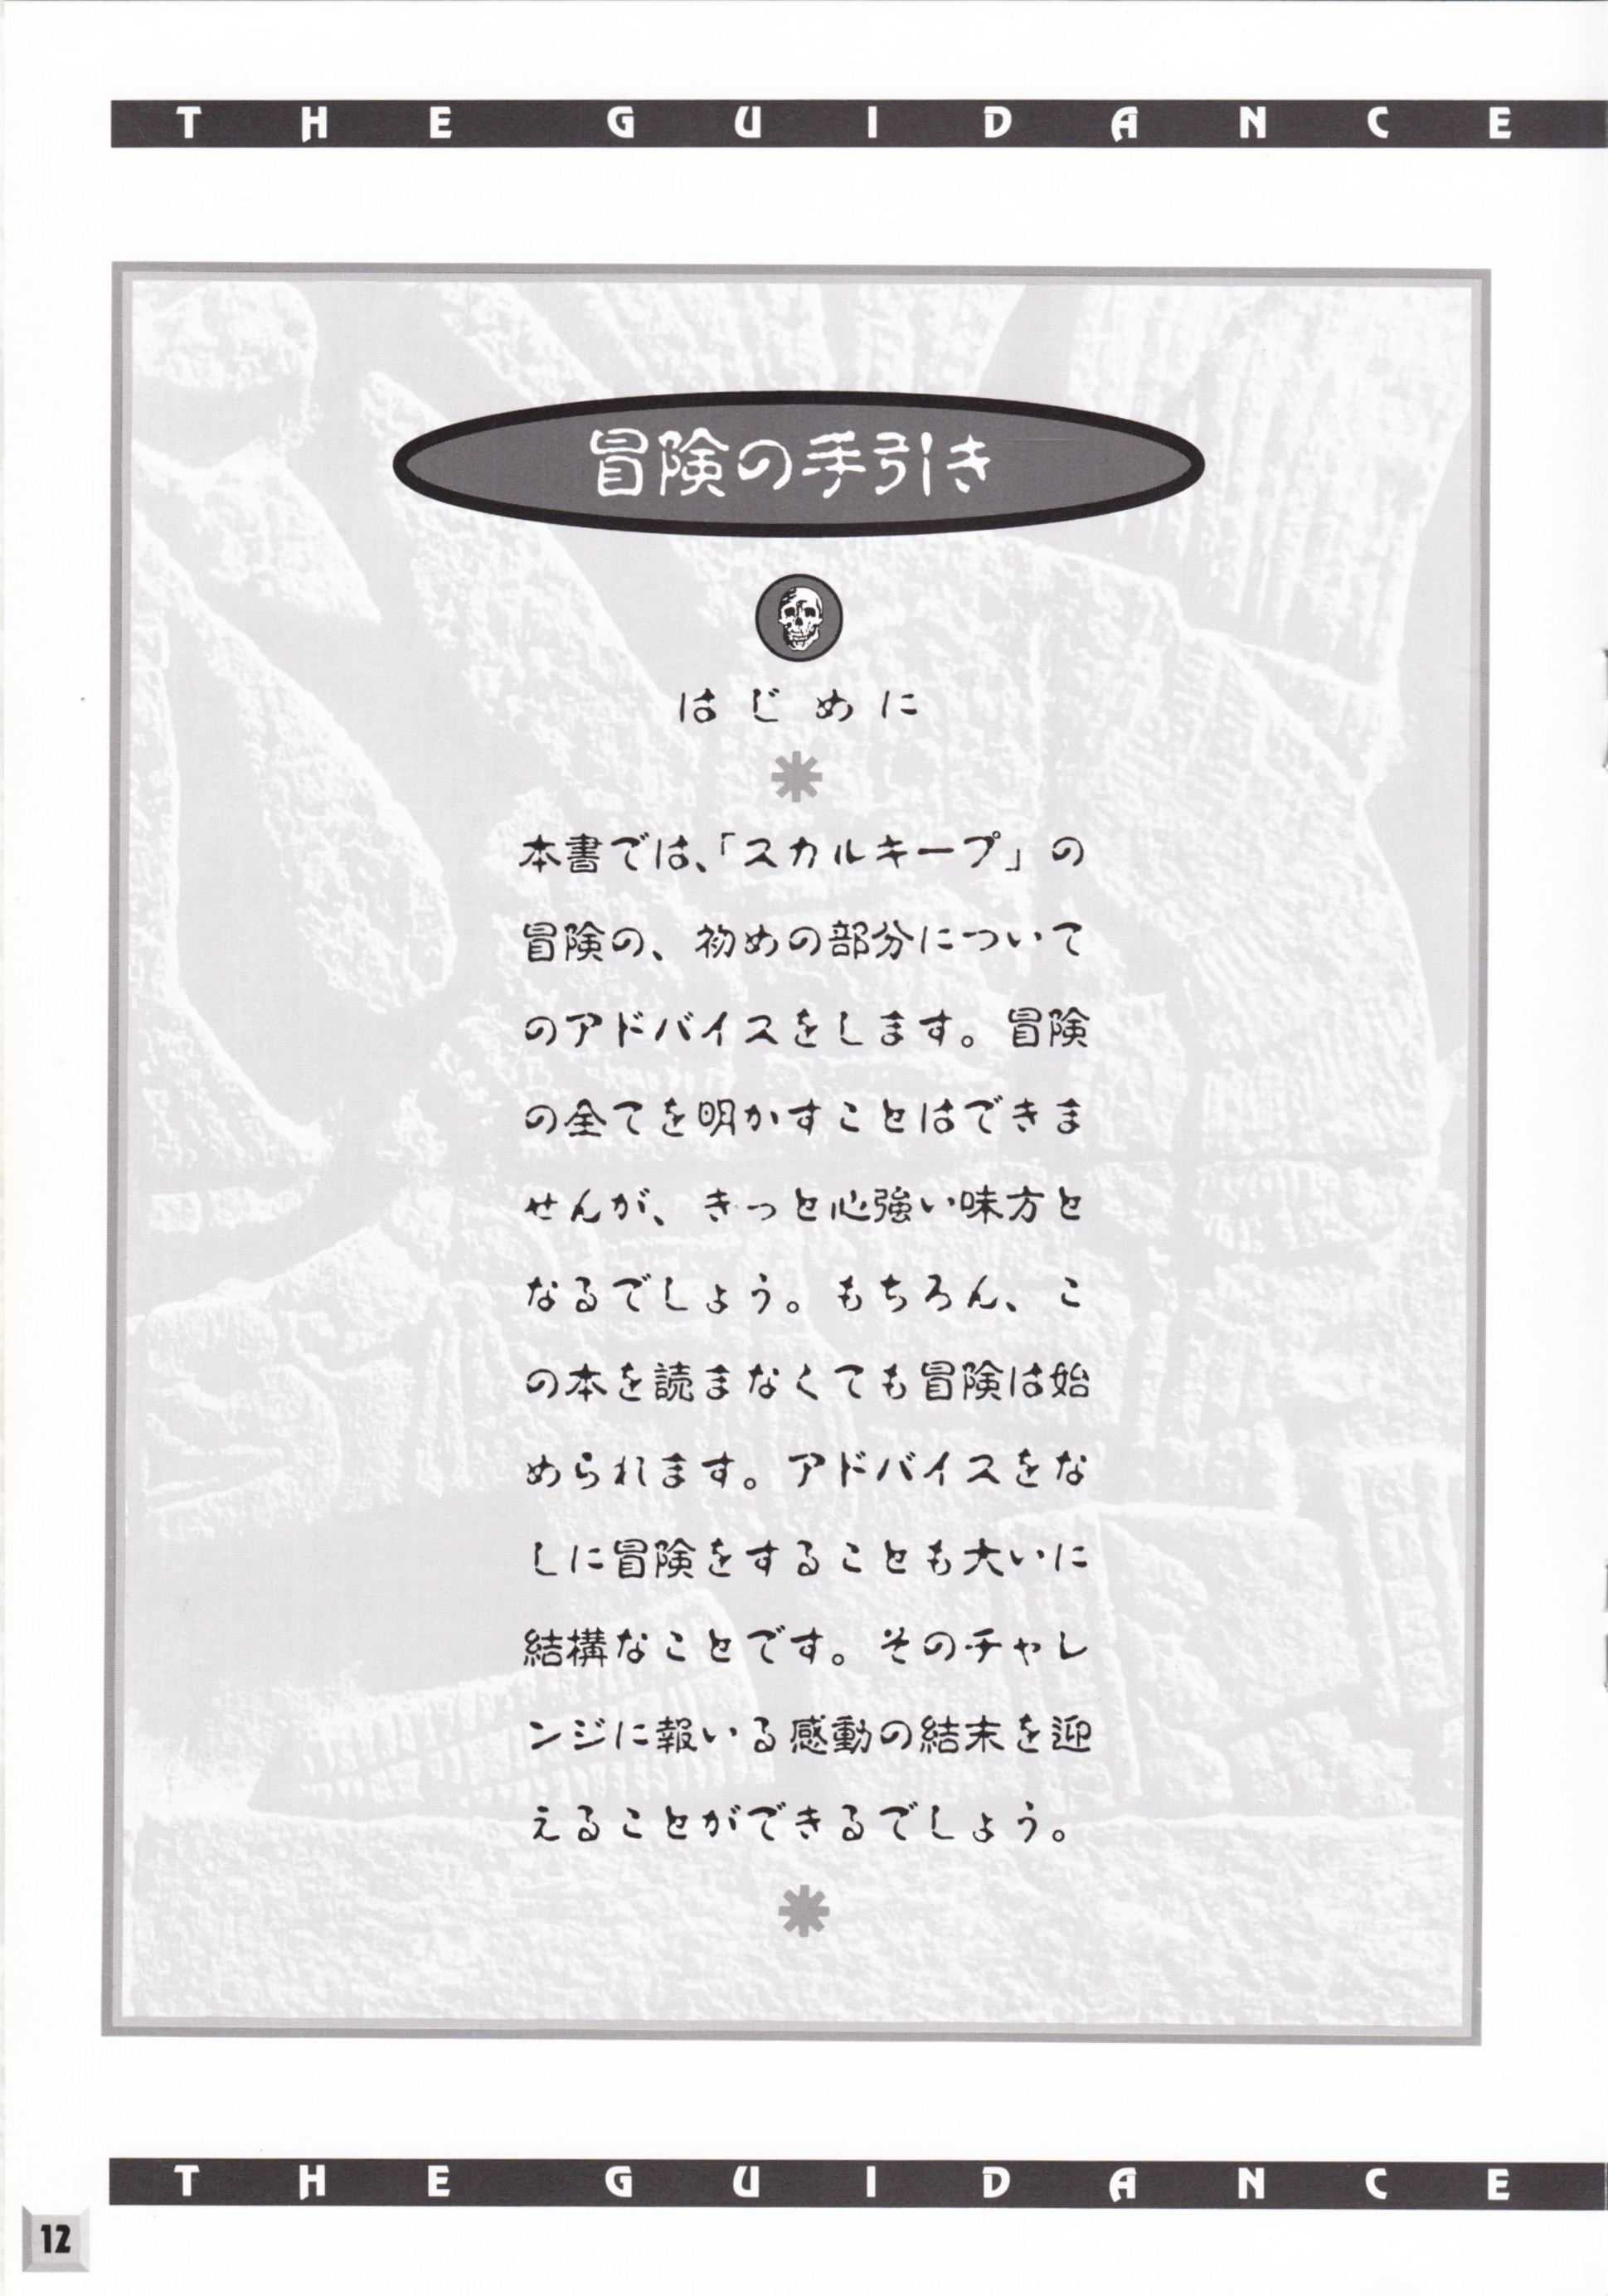 Game - Dungeon Master II - JP - PC-9801 - 3.5-inch - The Guidance Of Adventure - Page 014 - Scan